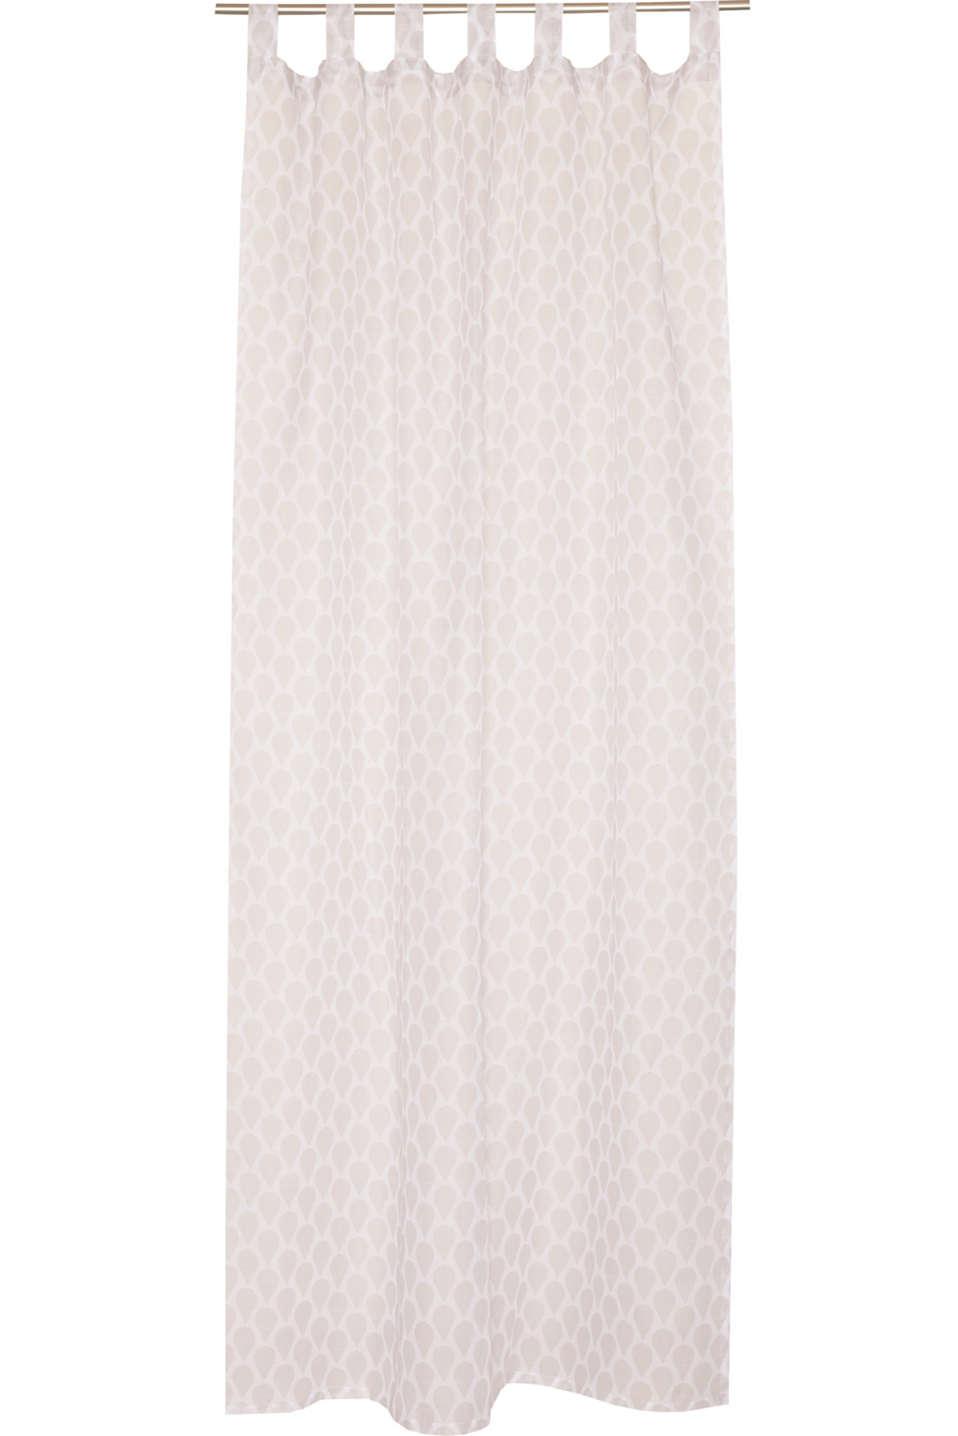 Esprit - Woven cotton tab top curtain